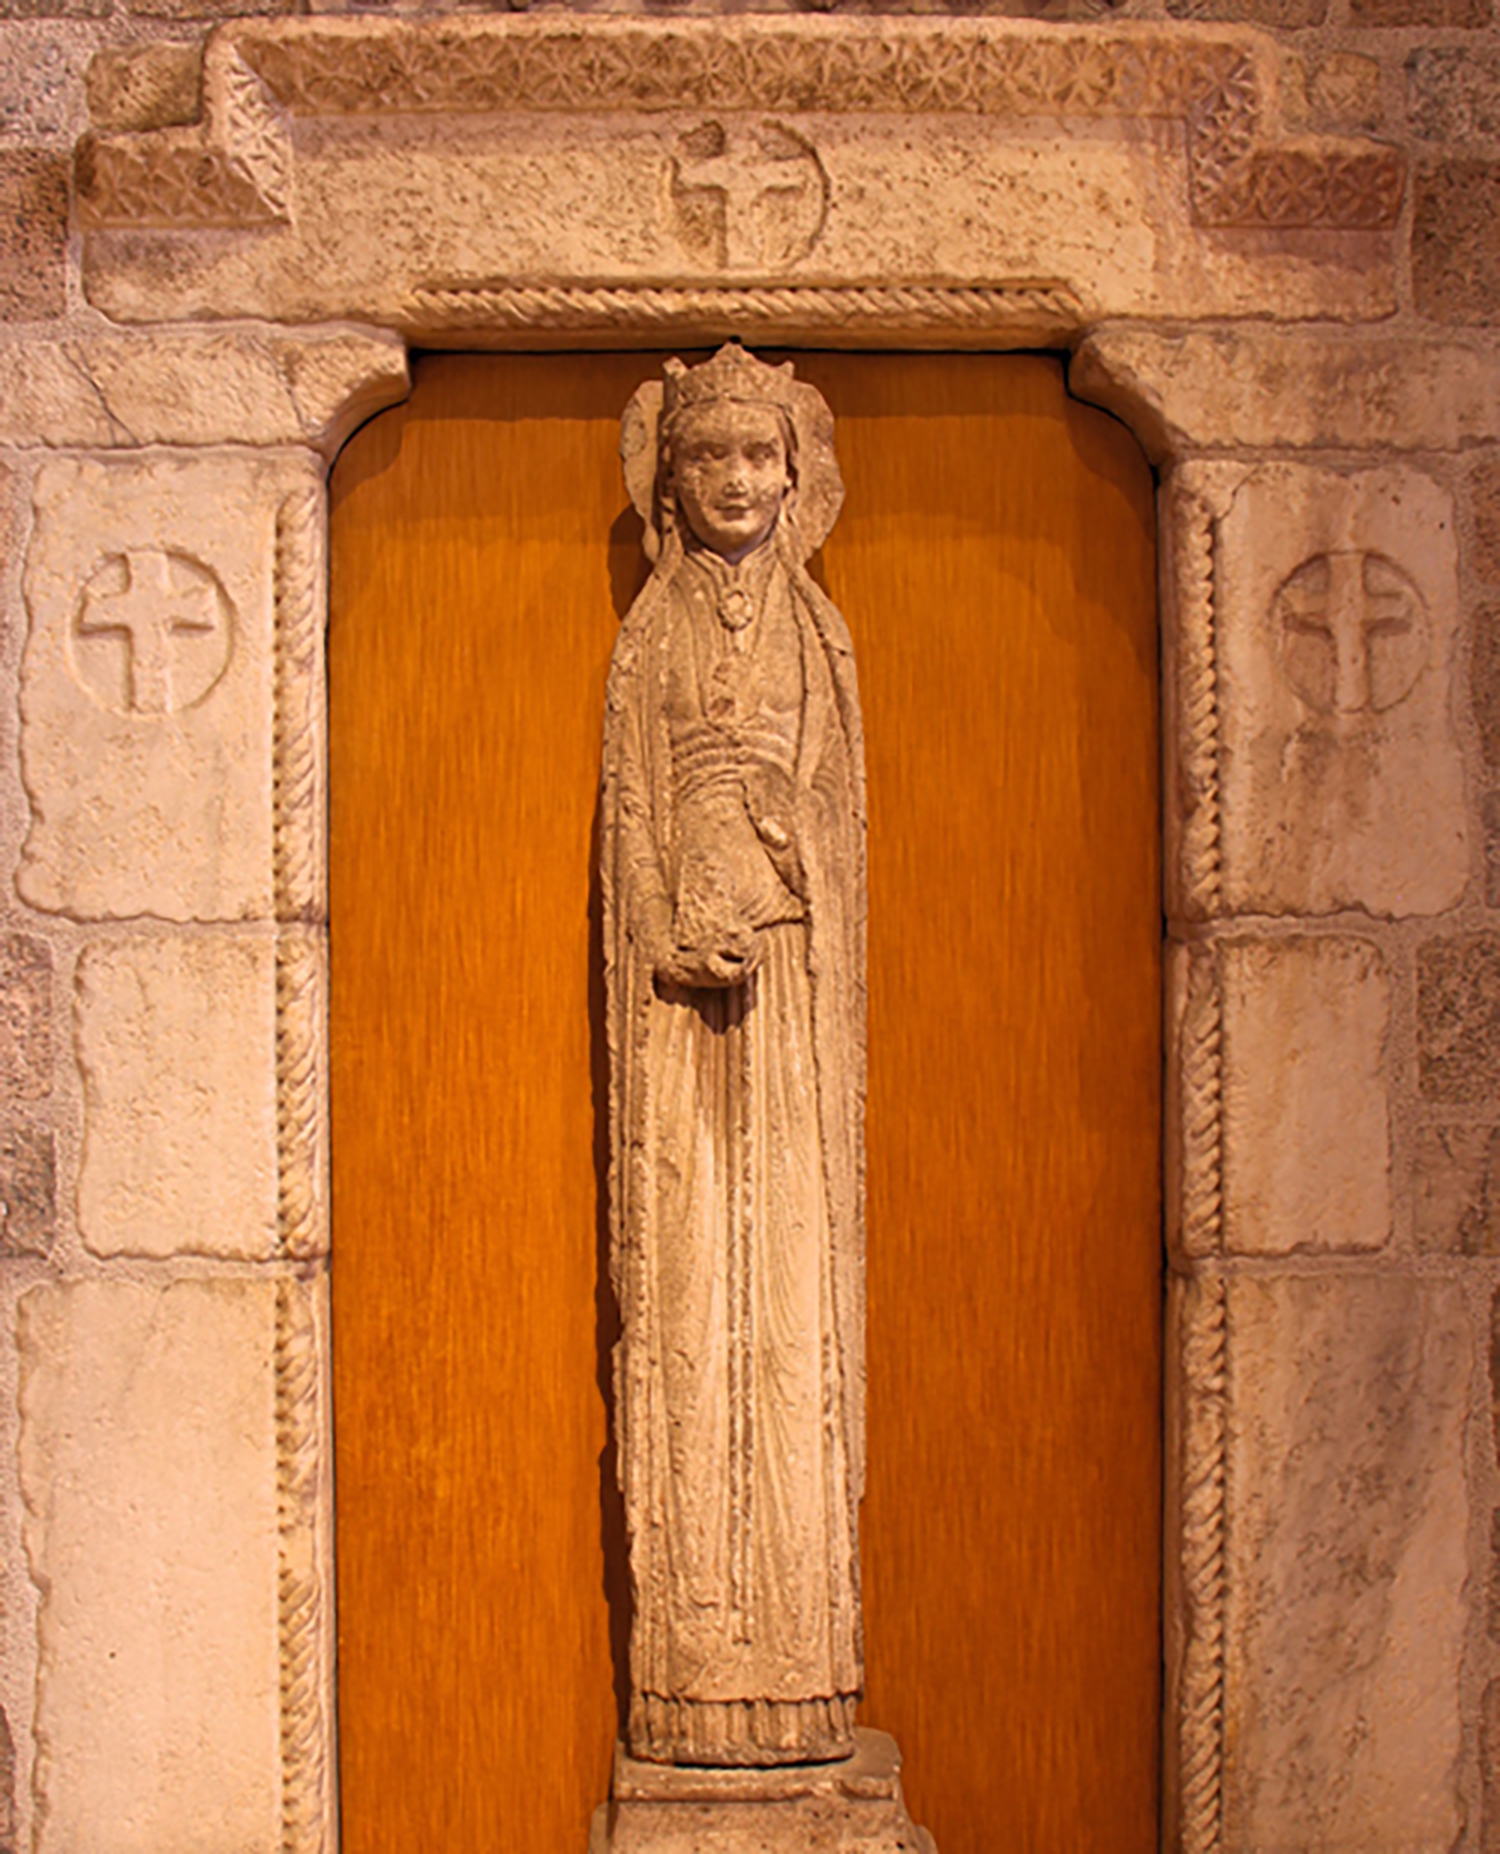 """Figure 9: Affectionately called the """"Slim Princess"""" by the Pitcairn family, this 12th-century limestone statue column of a haloed queen is installed in the great hall of Glencairn, enclosed by a stone portal with crosses."""